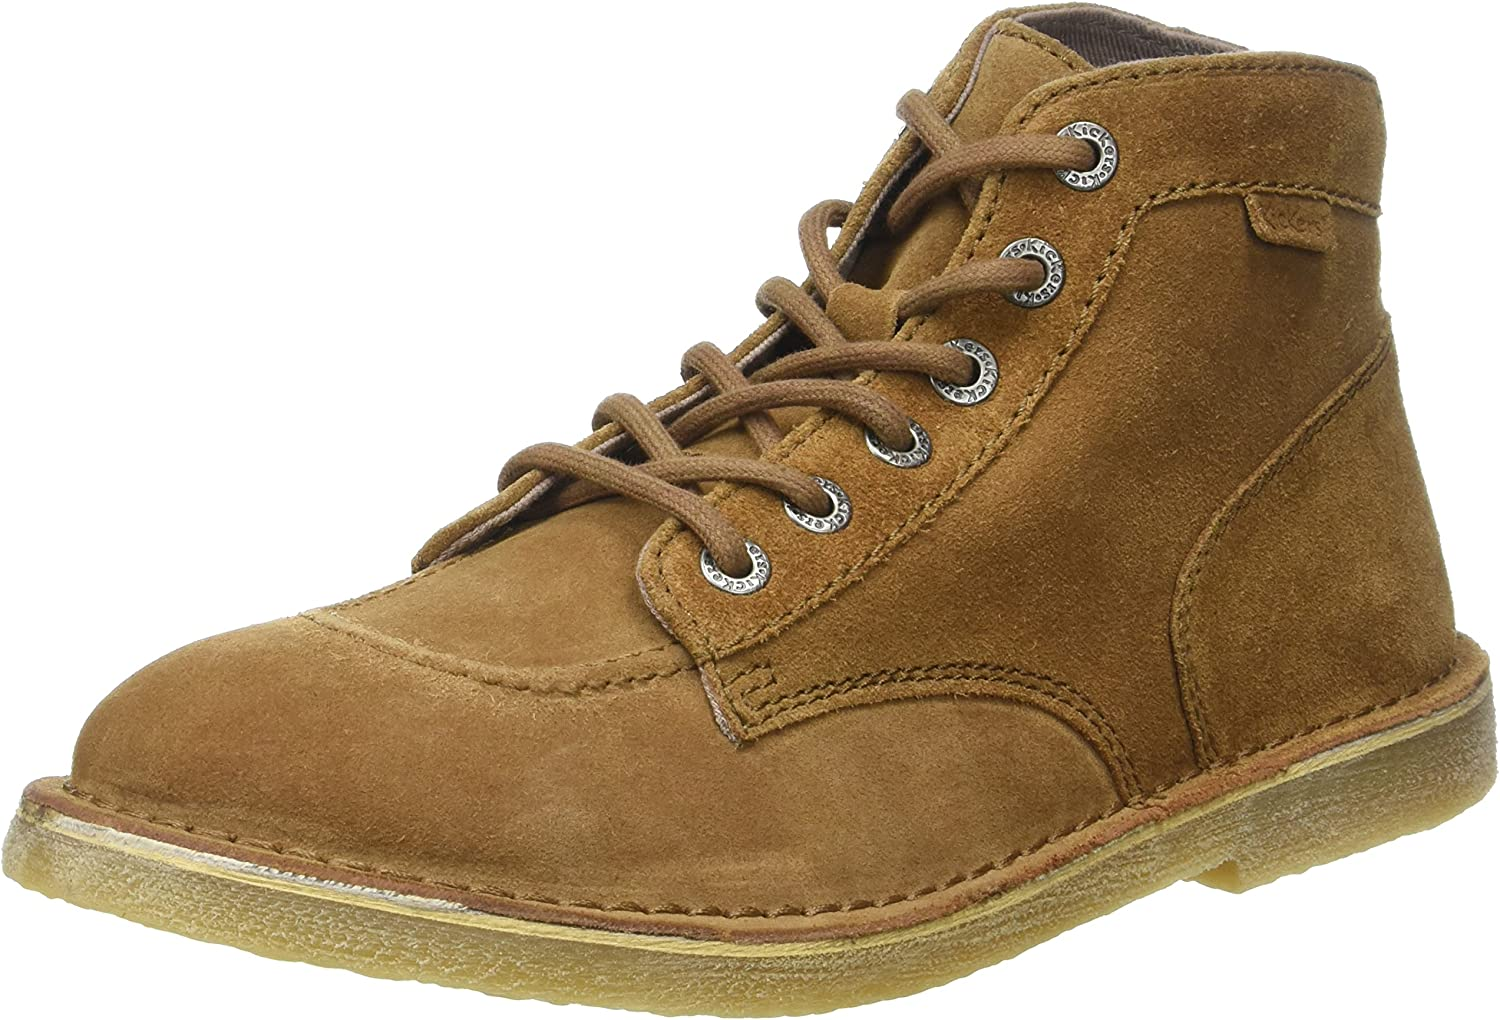 Kickers Men's Orilegend Ankle Boots